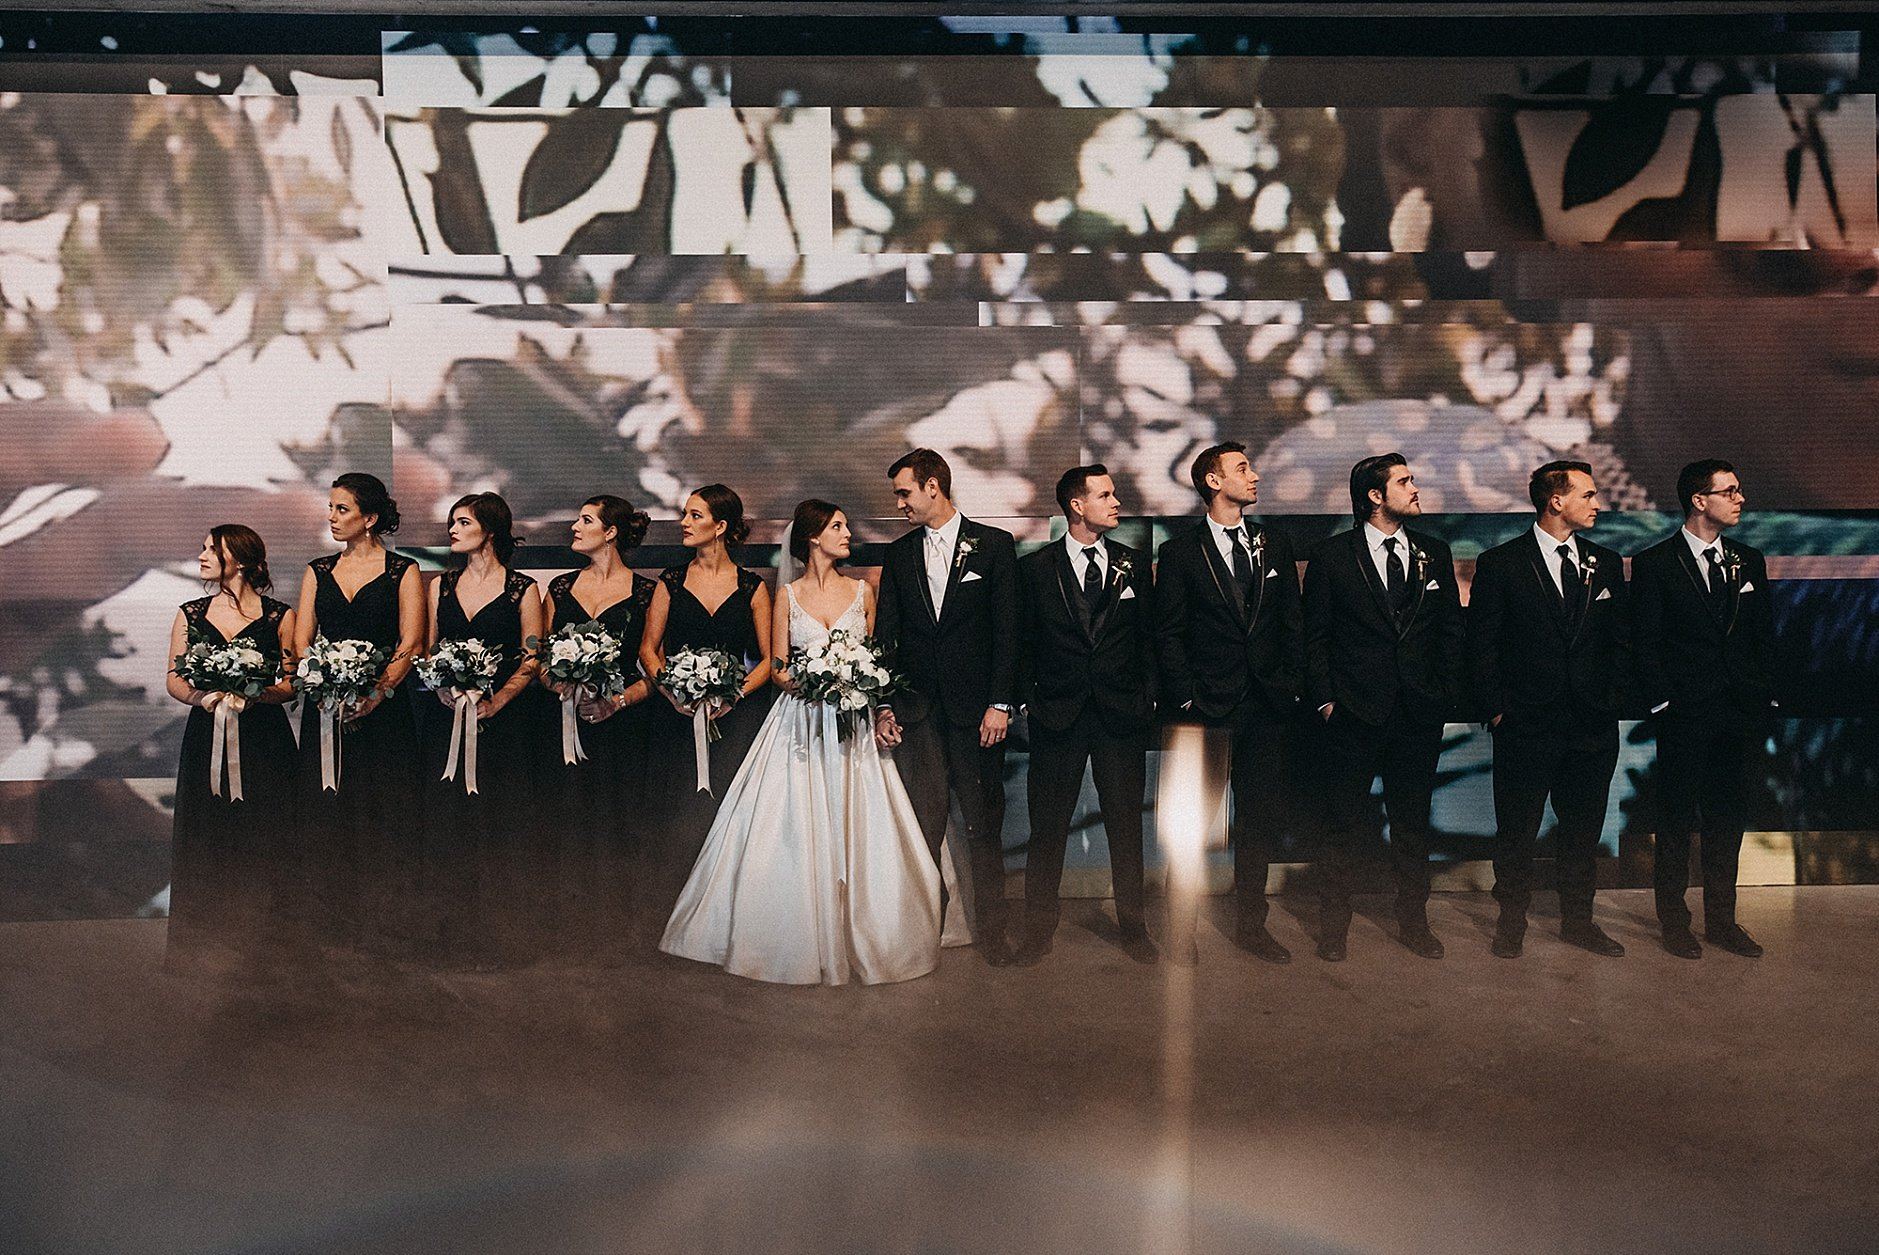 Wedding Photography in the Midwest